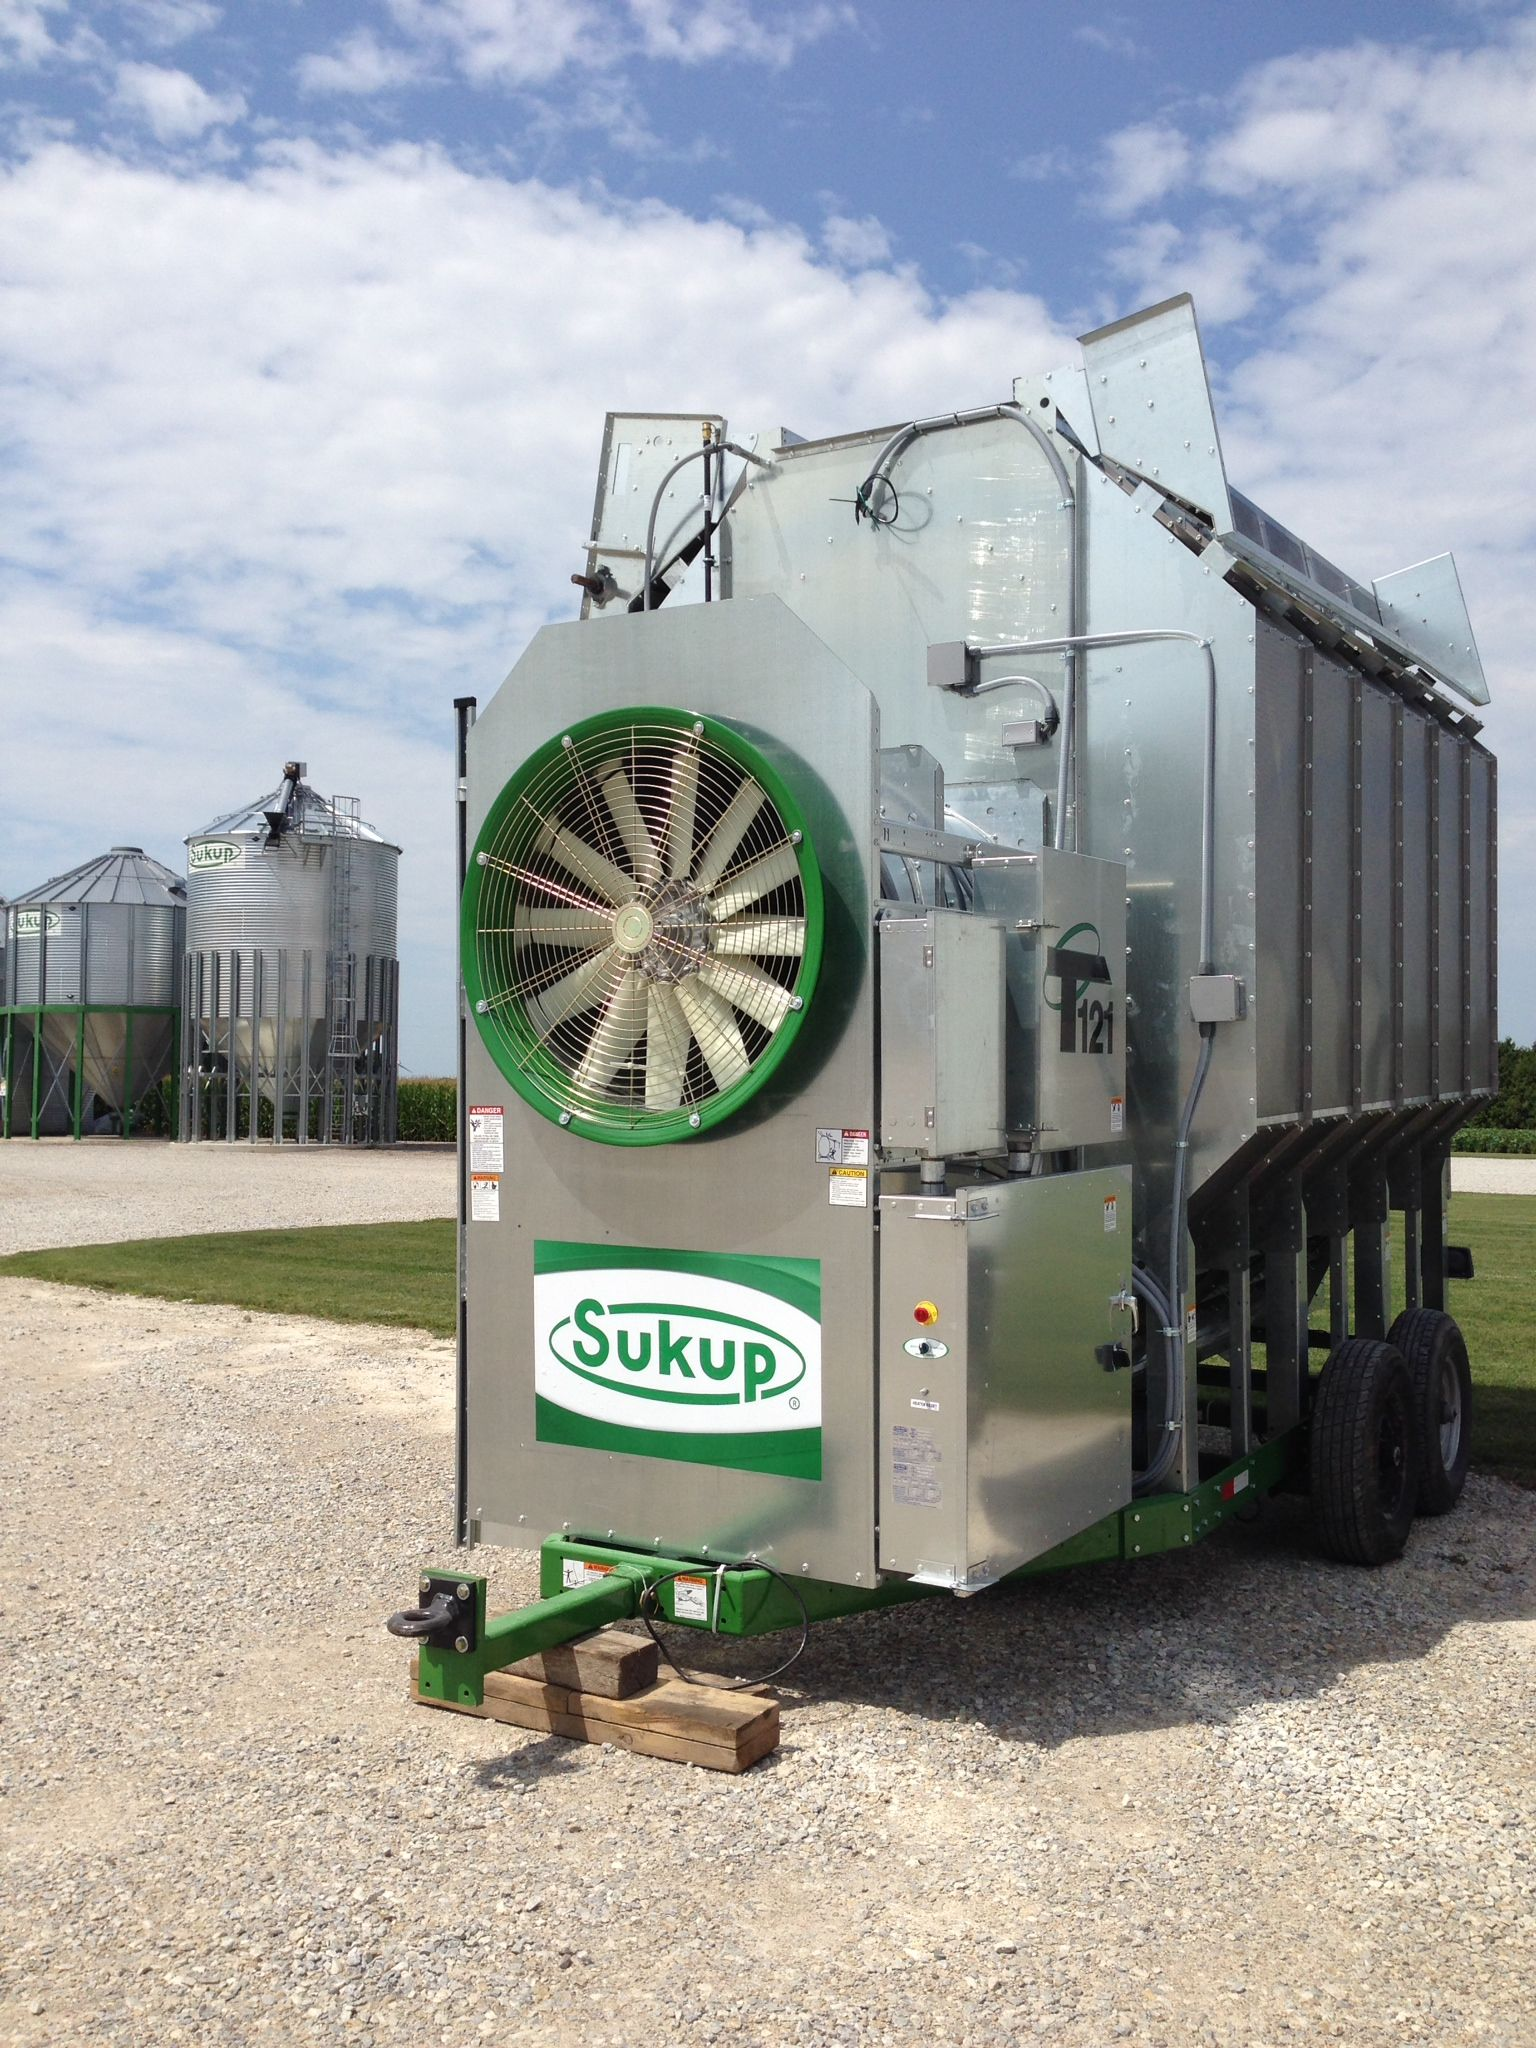 12' Sukup corn dryer getting delivered today to another